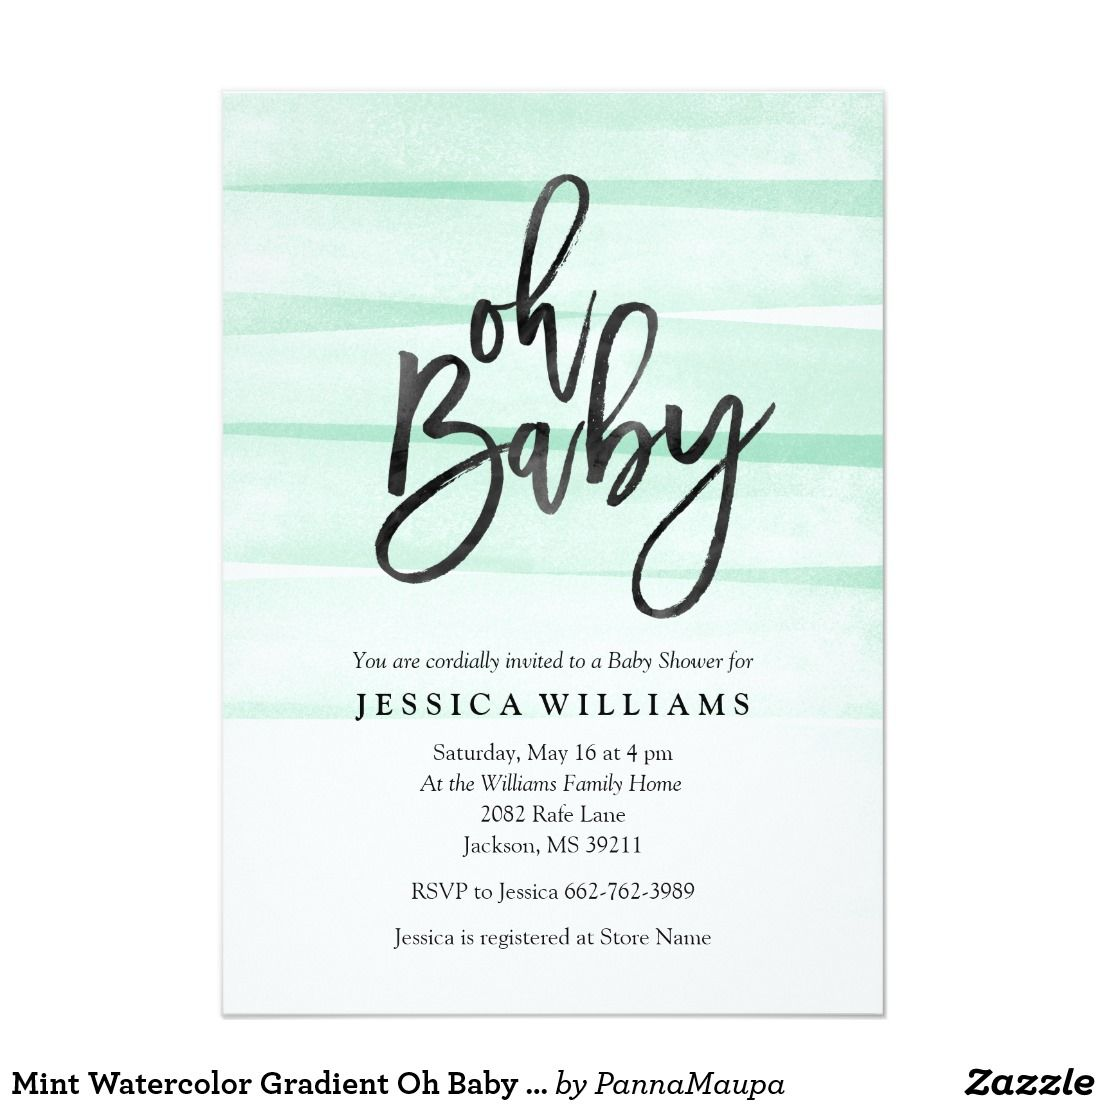 Mint Watercolor Gradient Oh Baby Shower Invitation Modern trendy ...